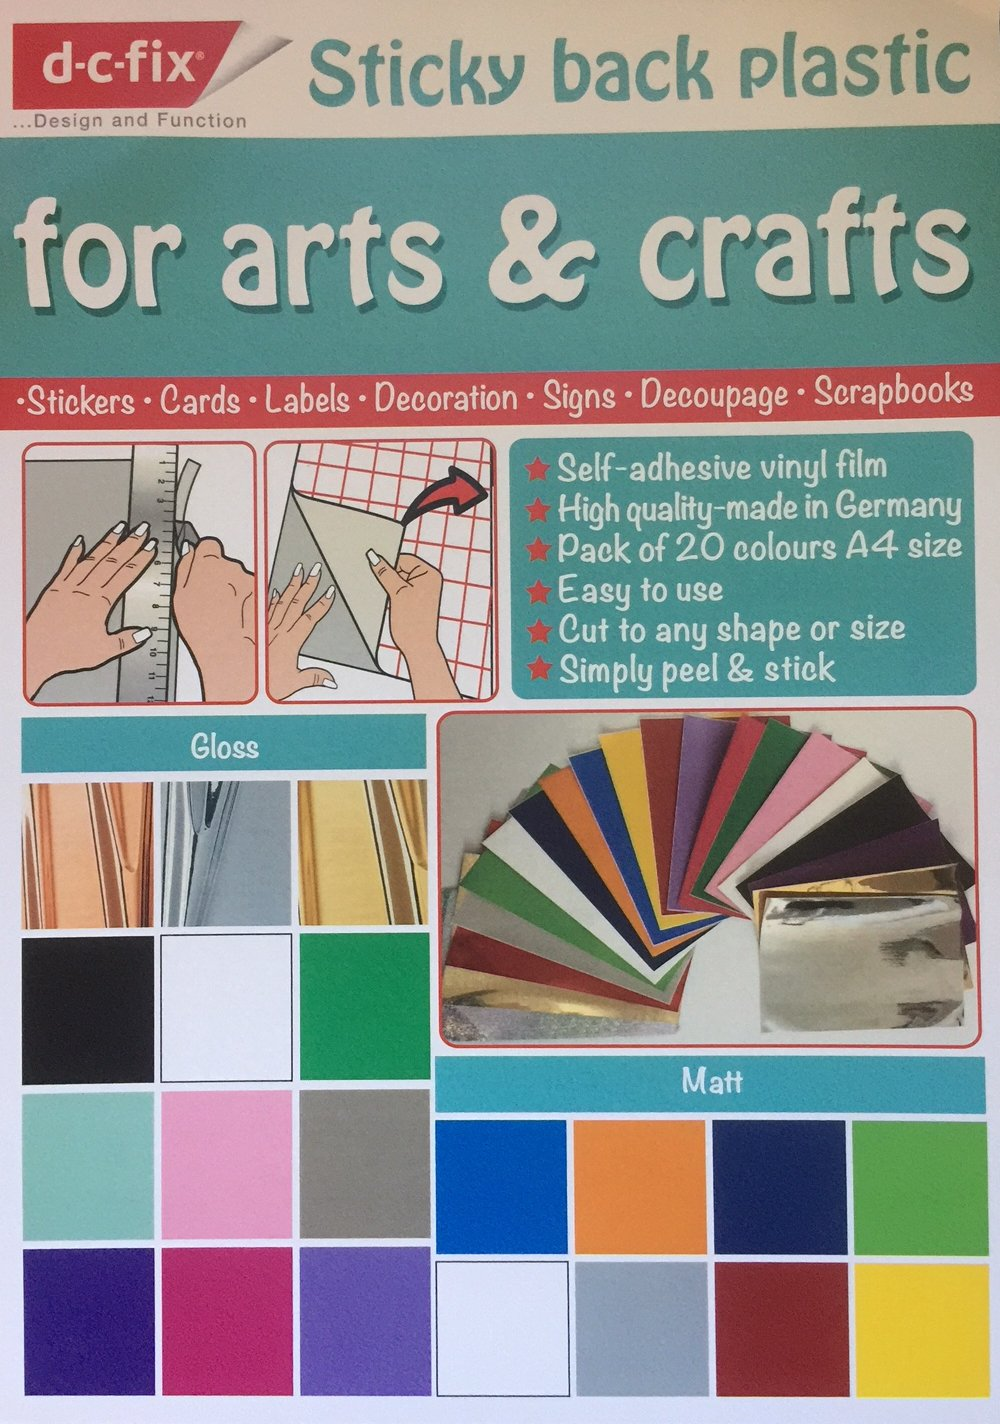 d-c-fix Sticky Back Plastic (Self Adhesive Vinyl Film) 20 Multi Coloured Craft Pack (Glossy, Matt and Metallic) A4 Size